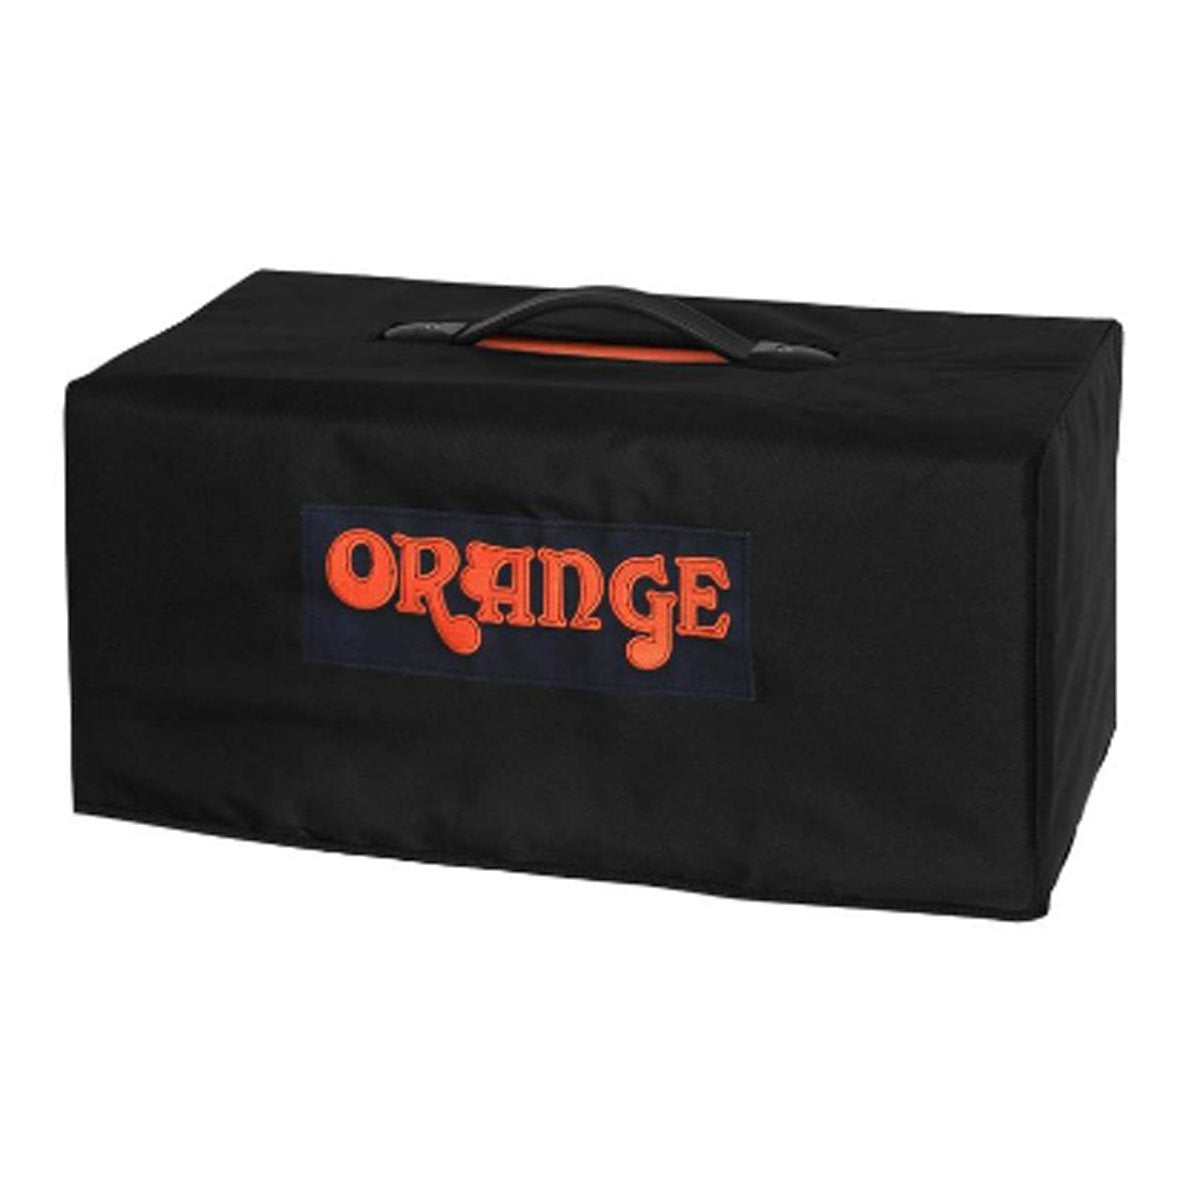 Orange Amplifier Cover Vertical 212 Cab Cover for 2x12inch Cabinet